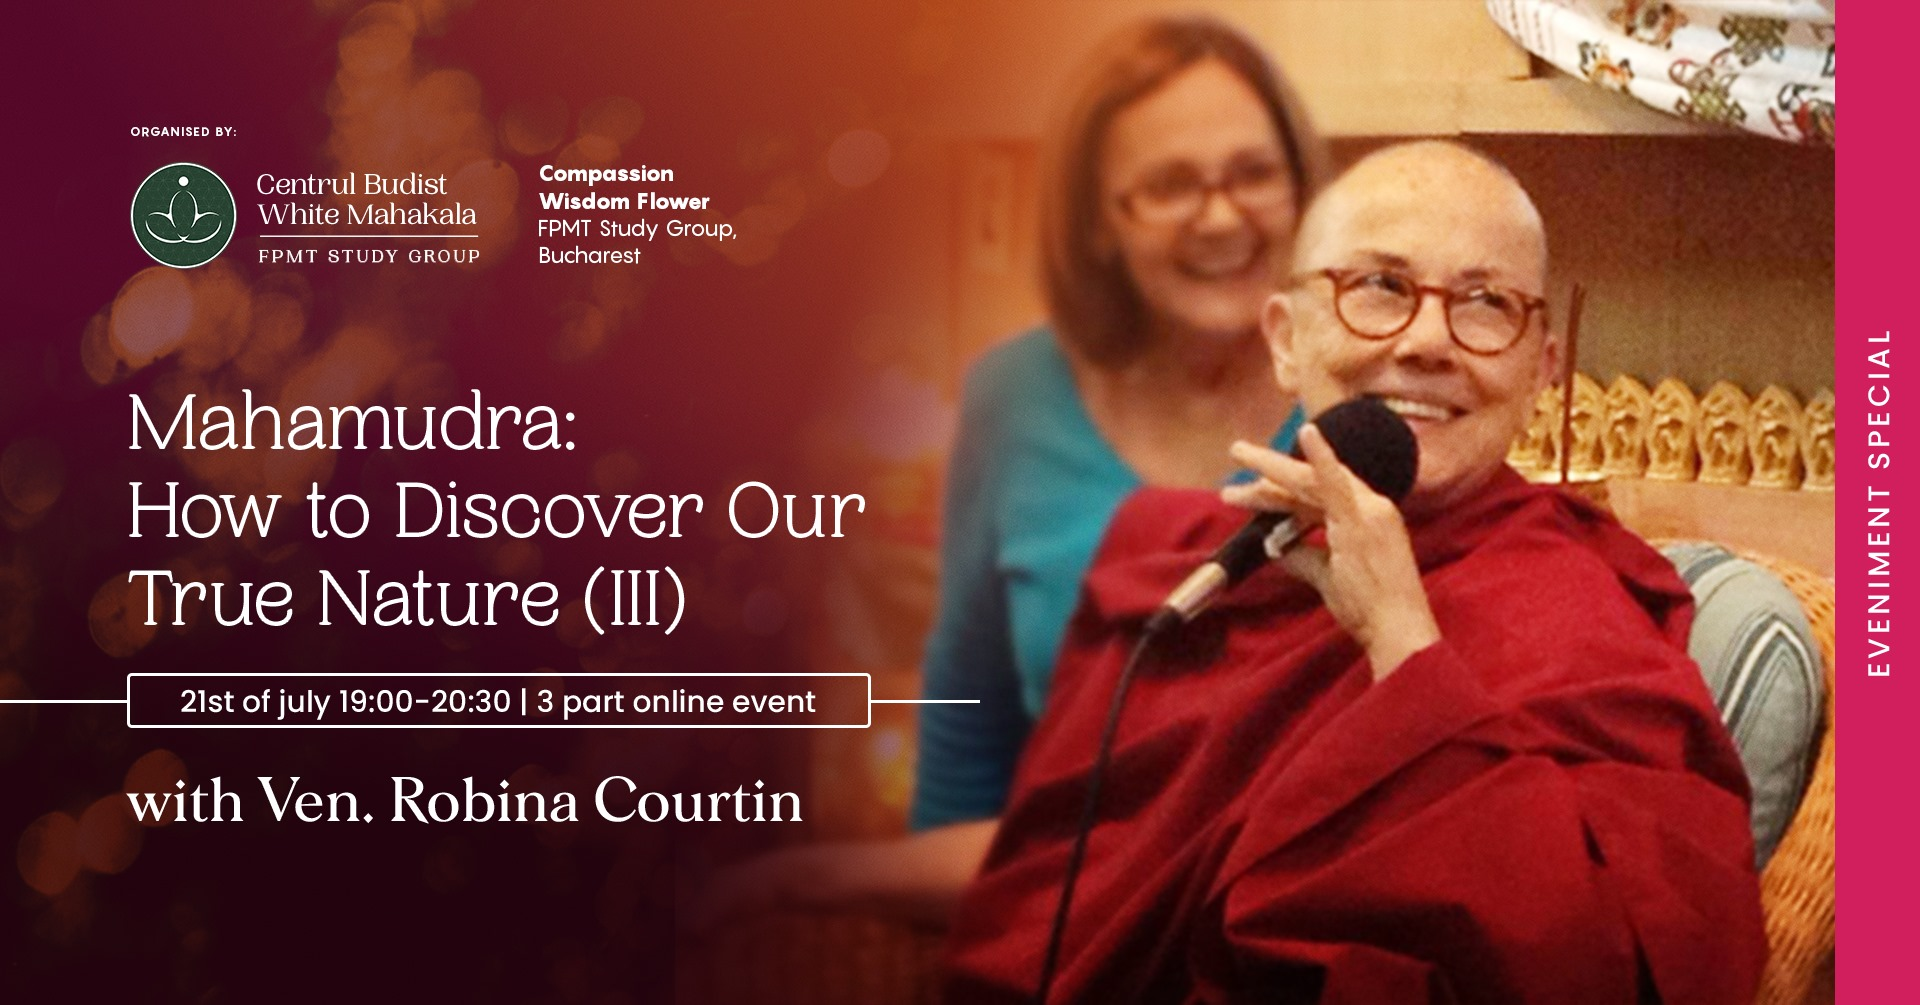 Mahamudra: How to Discover our True Nature with Ven. Robina Courtin